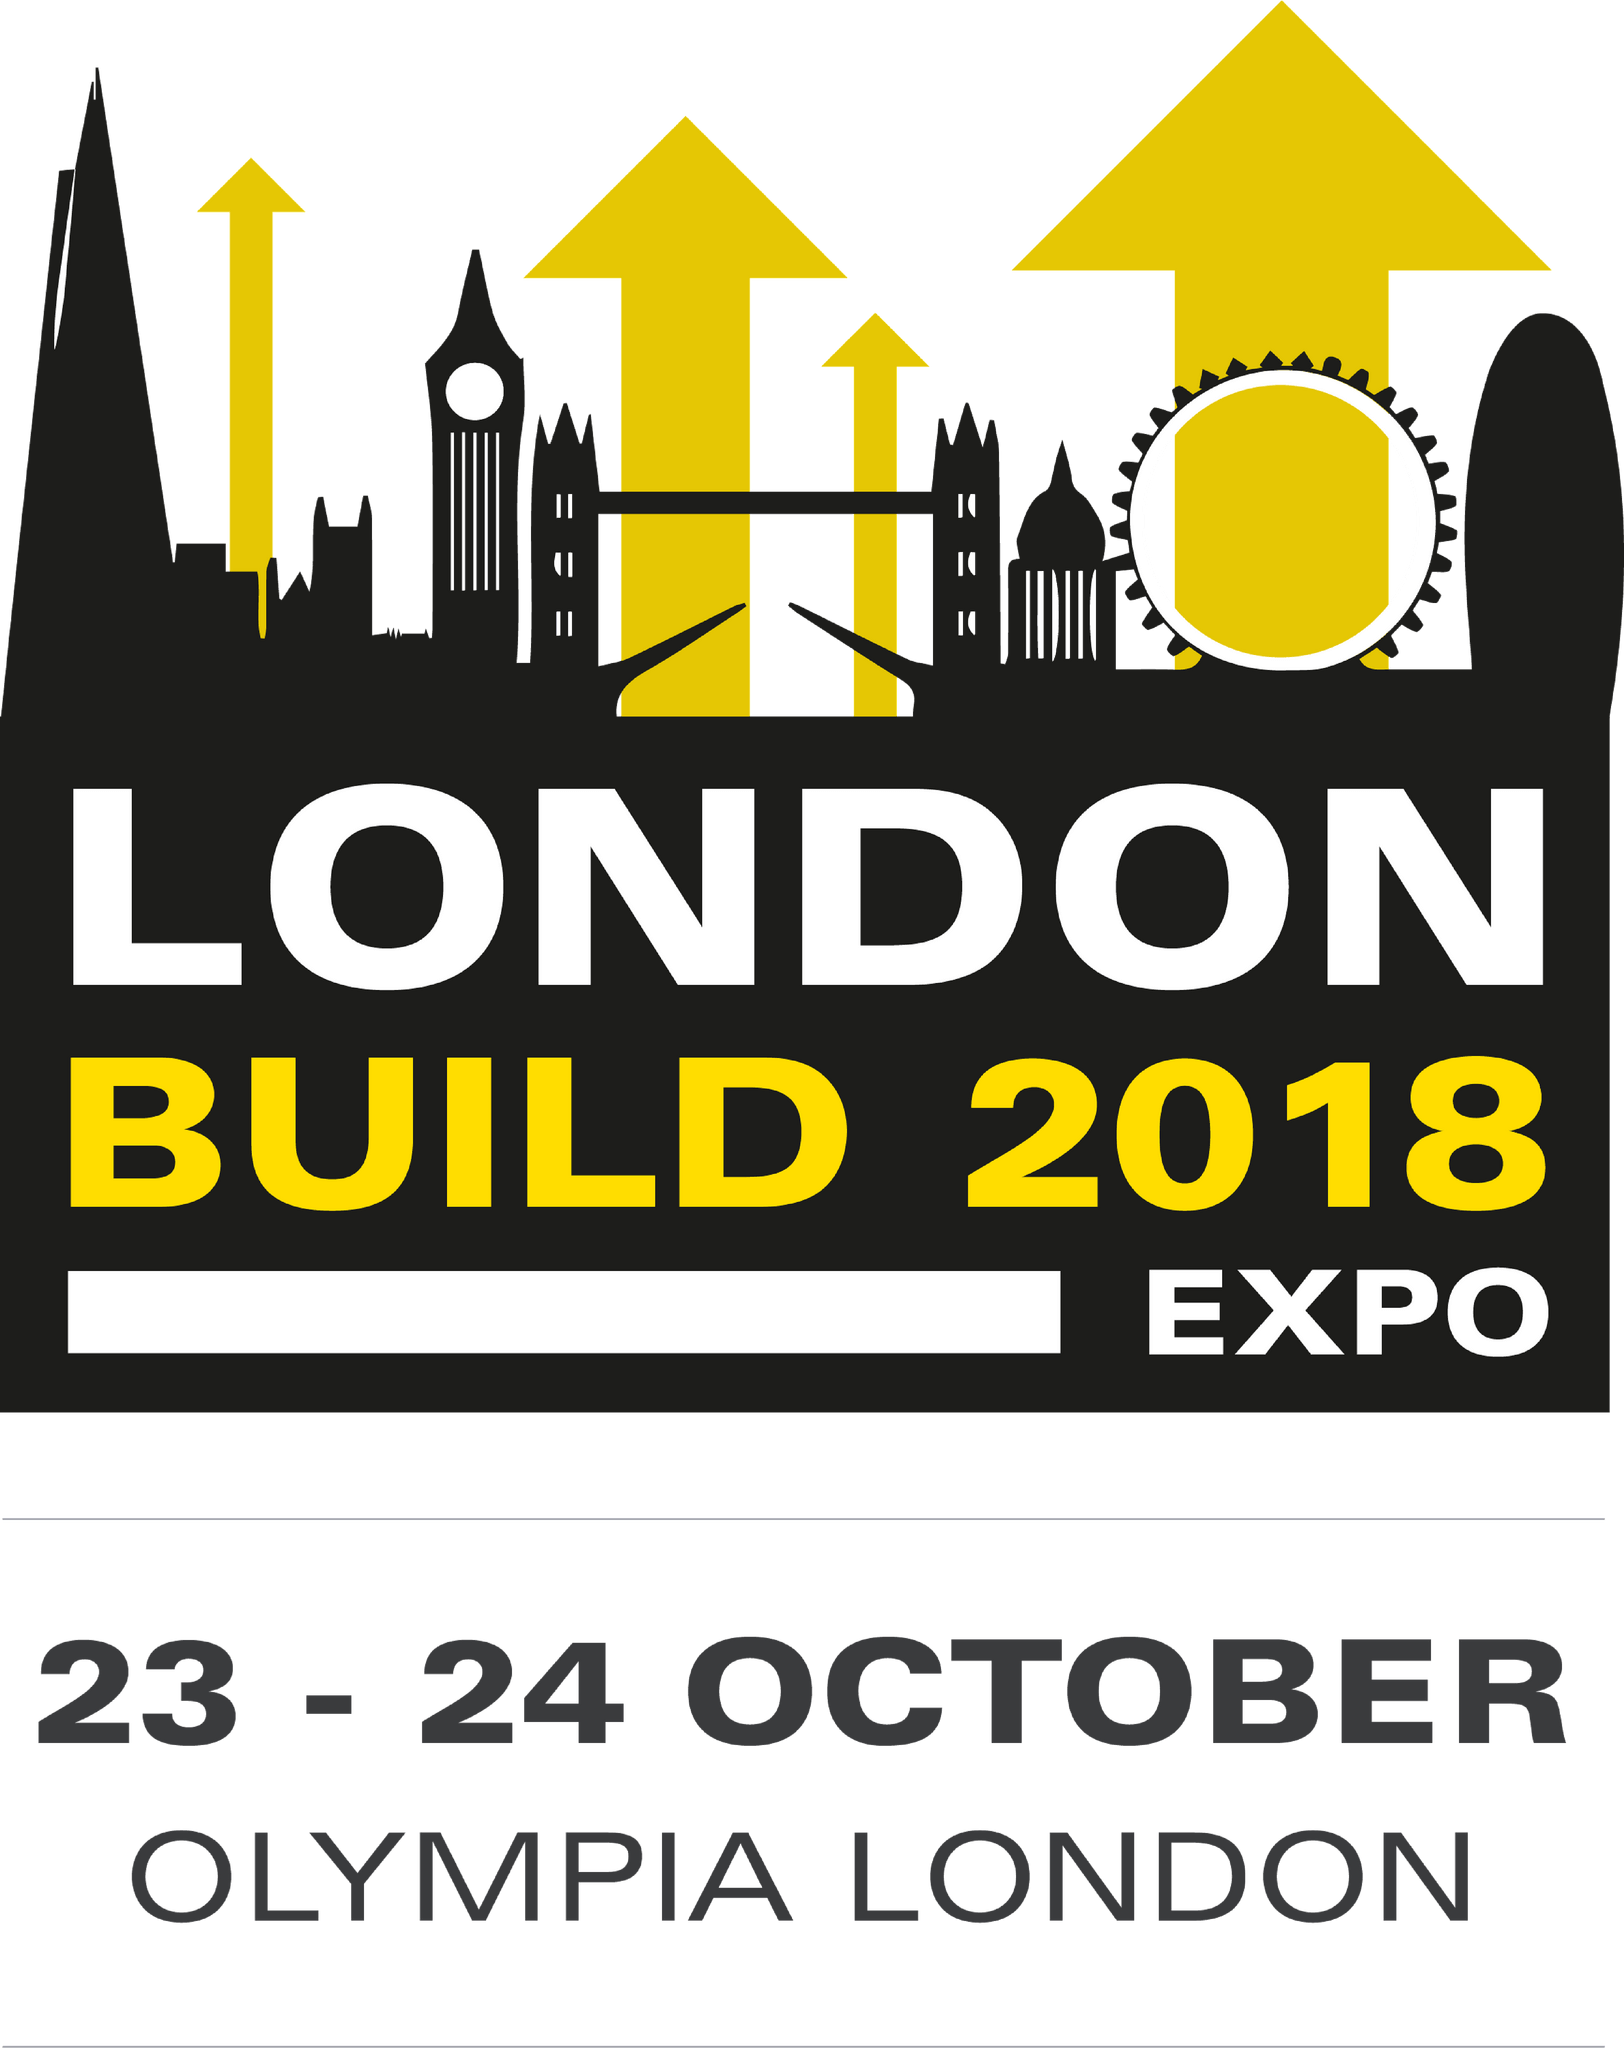 LONDON BUILD - THE LEADING BUILDING & CONSTRUCTION SHOW FOR LONDON